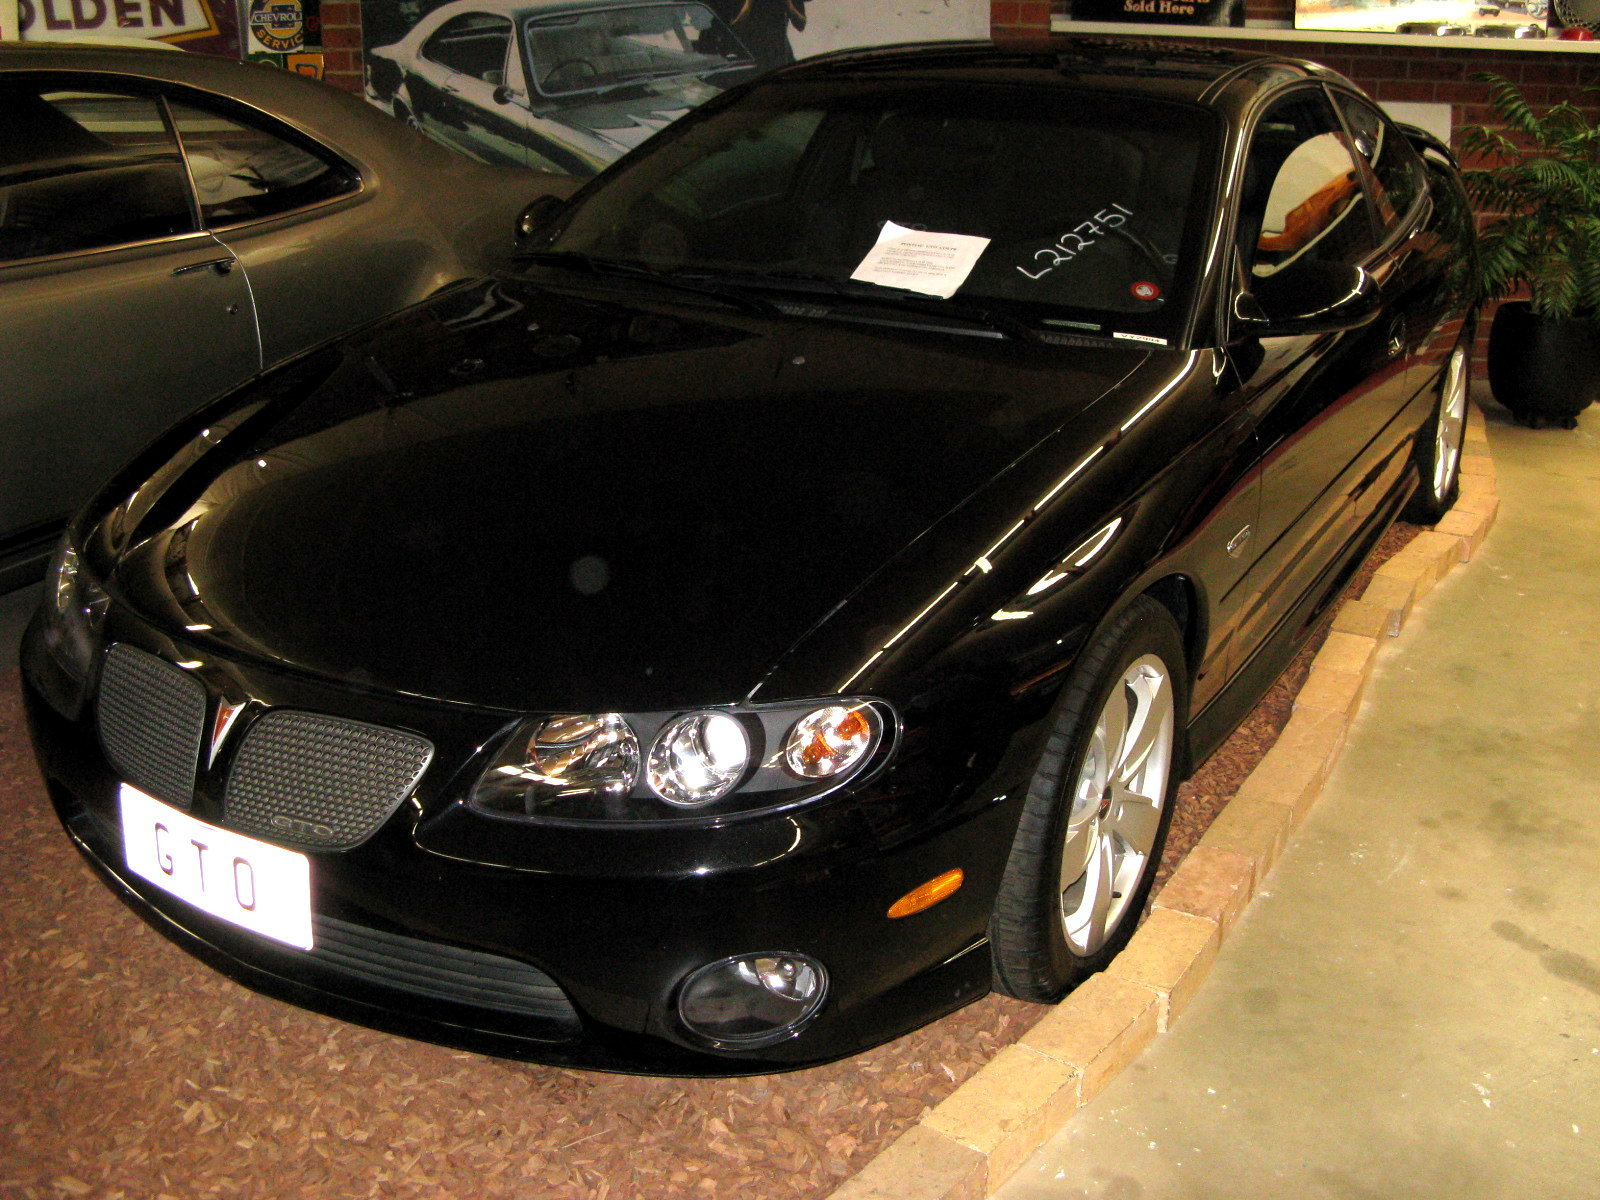 File:2004 Pontiac GTO coupe 01.jpg - Wikimedia Commons